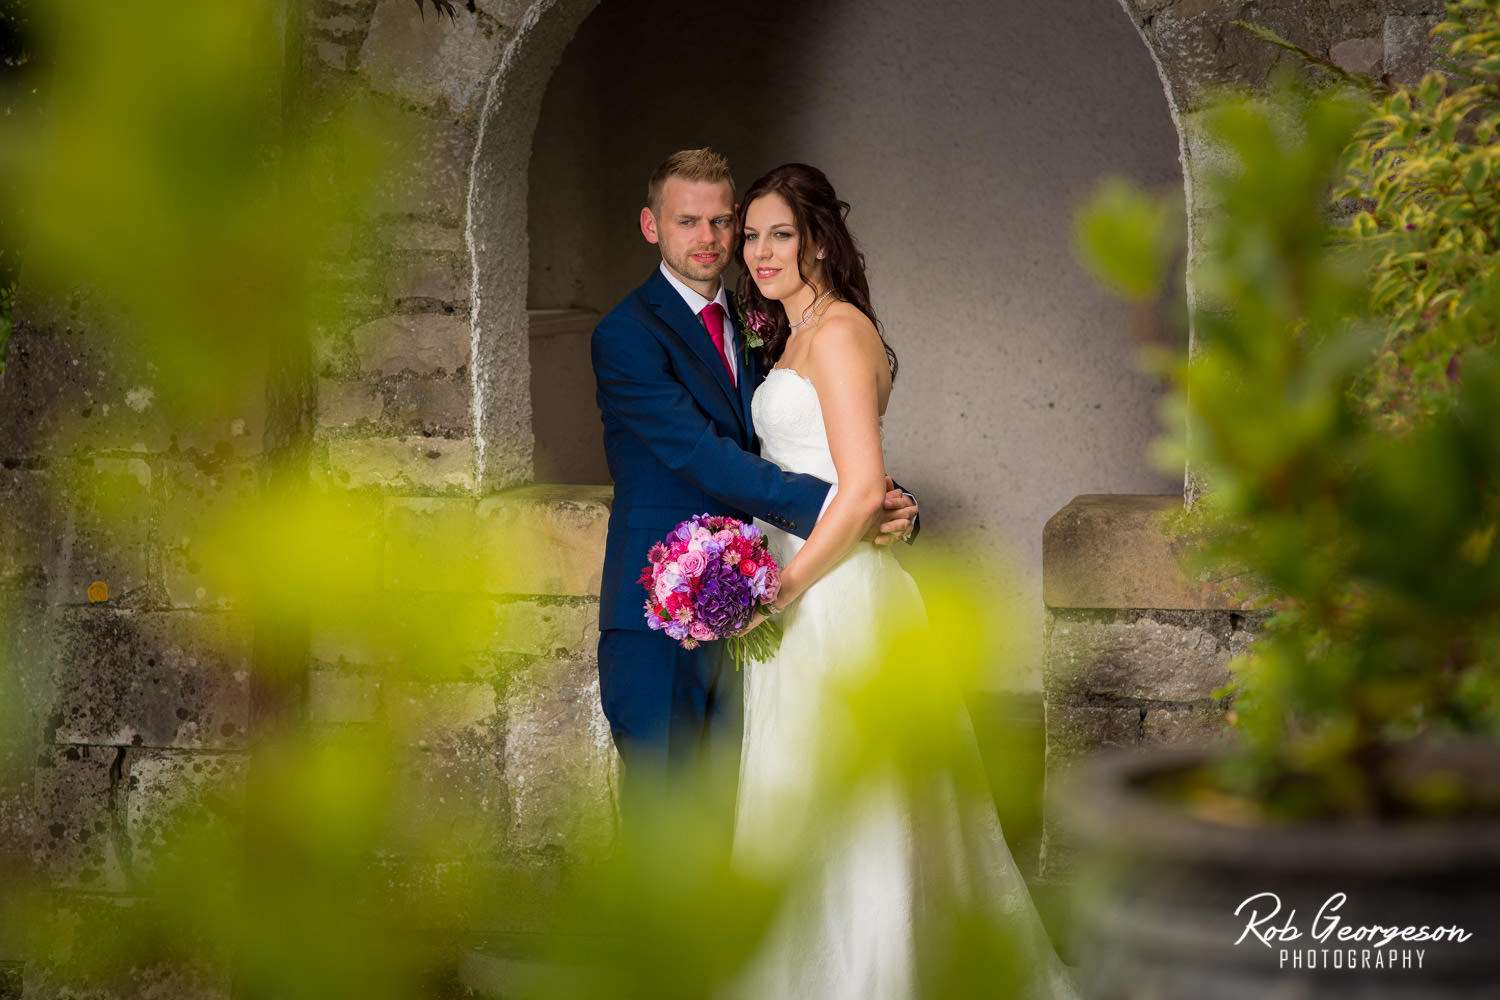 Castle_Green_Hotel_Kendal_Wedding_Photographer (48).jpg